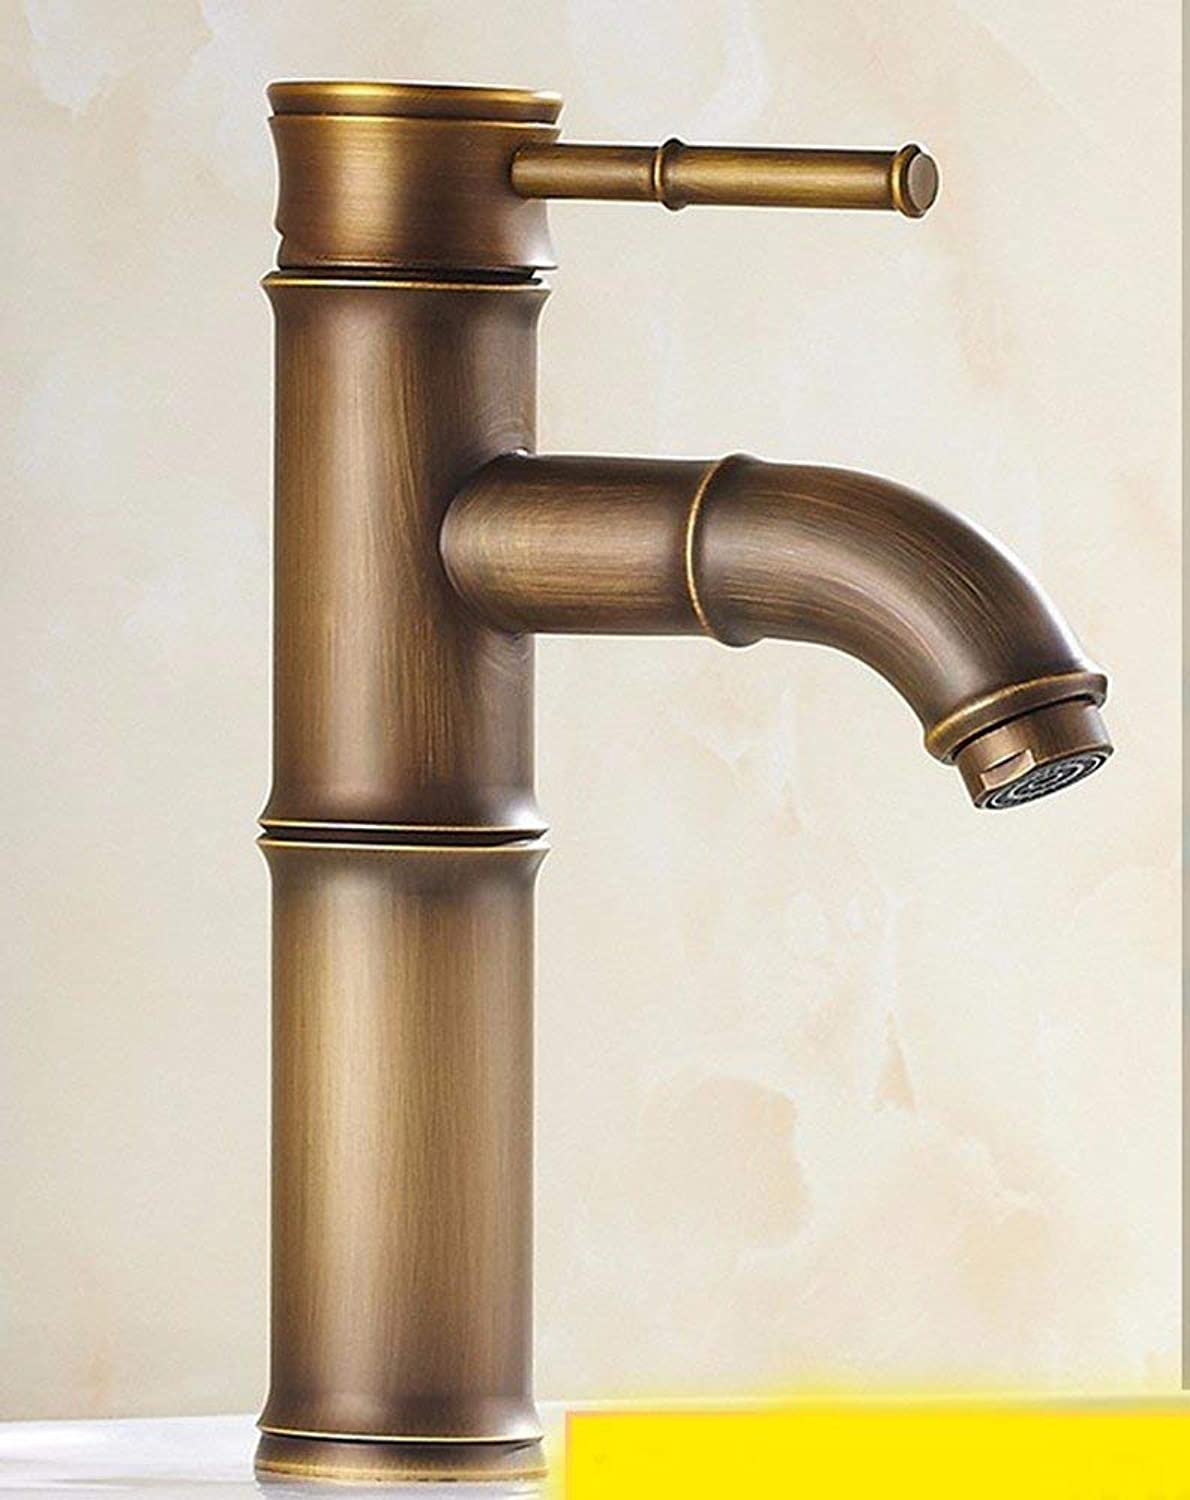 Oudan European style retro style copper a raised wall mounted toilets kitchens WATER FAUCET